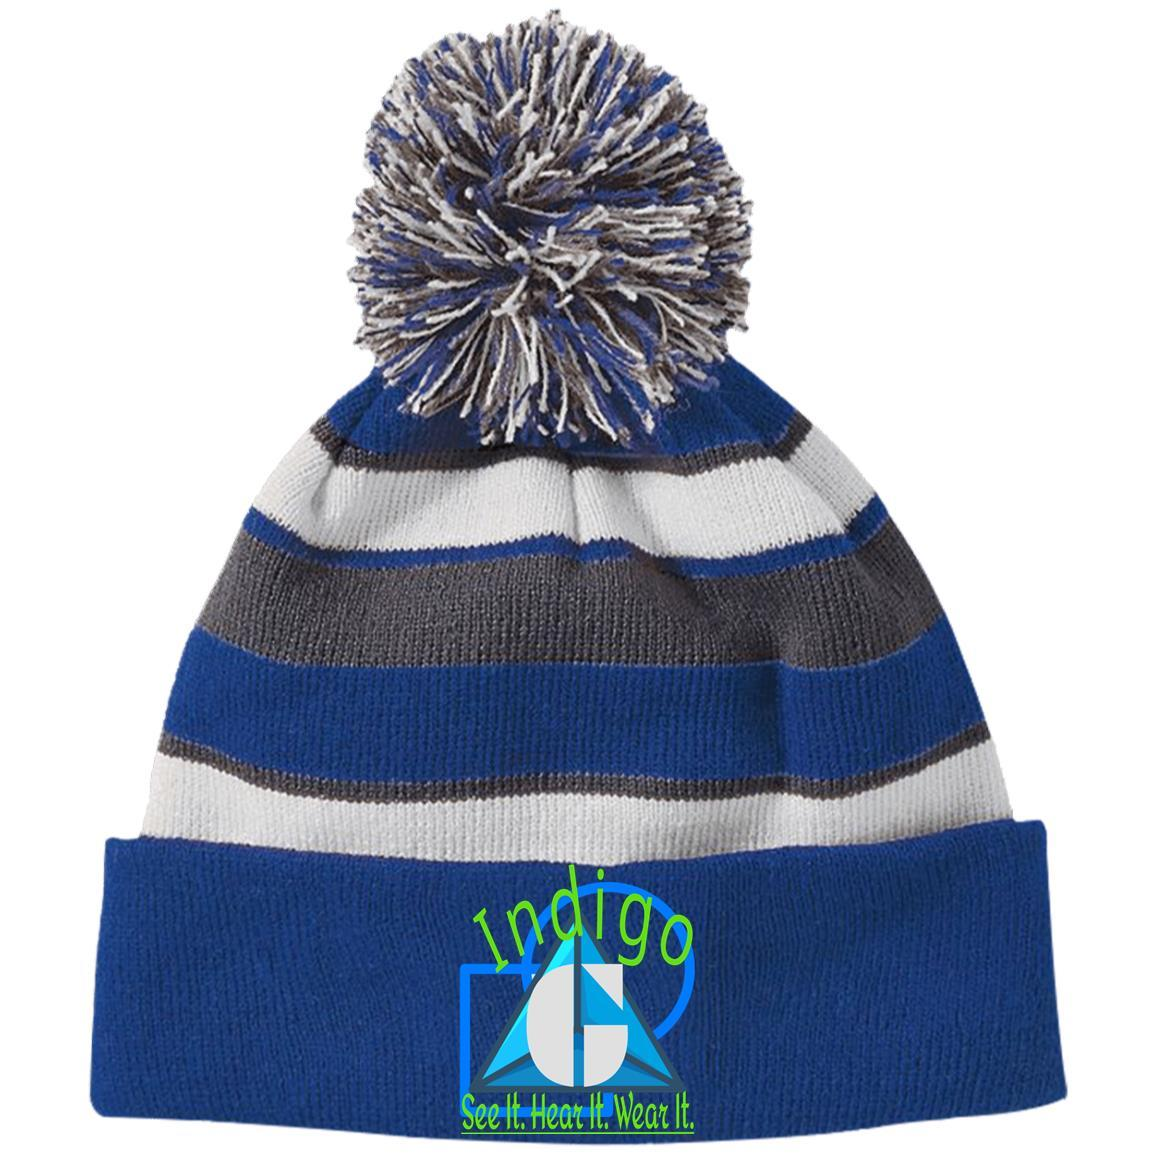 3D-52 -  Holloway Striped Beanie with Pom - Indigo G - Indigo G